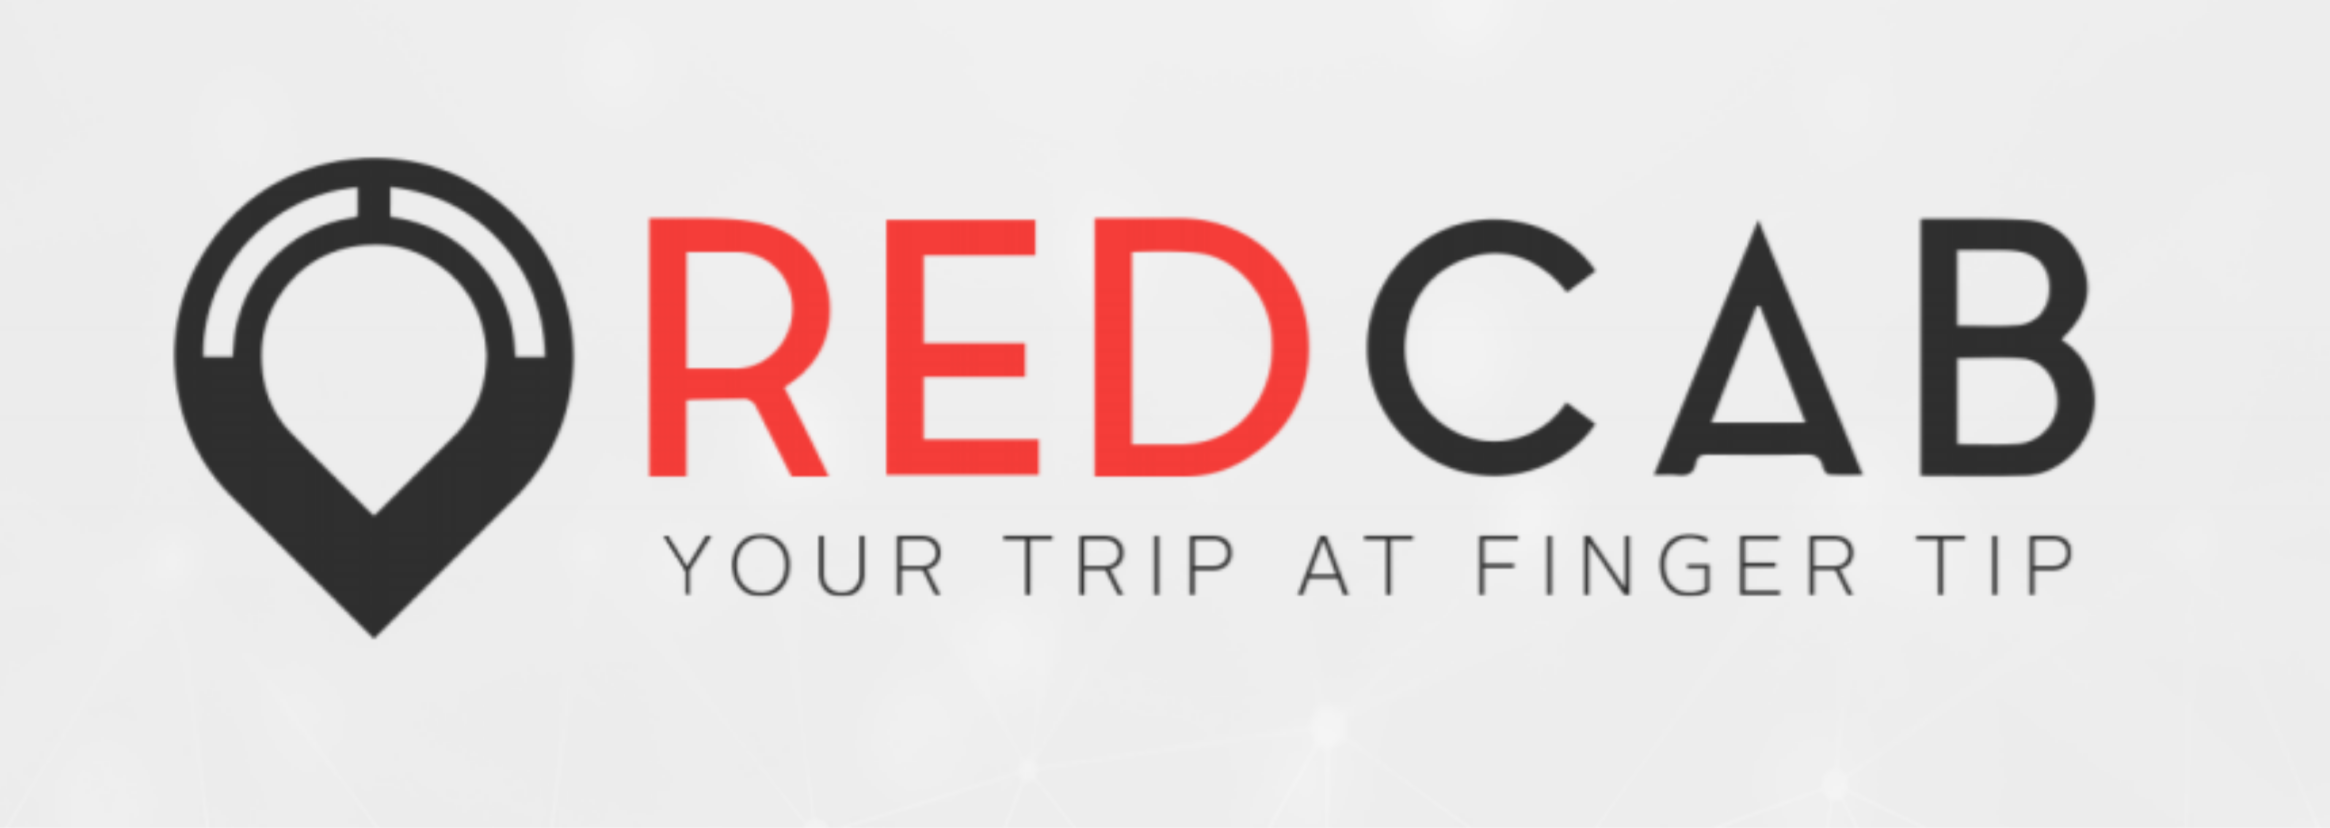 RedCab - high-level taxi transfer | Golos.io Блоги